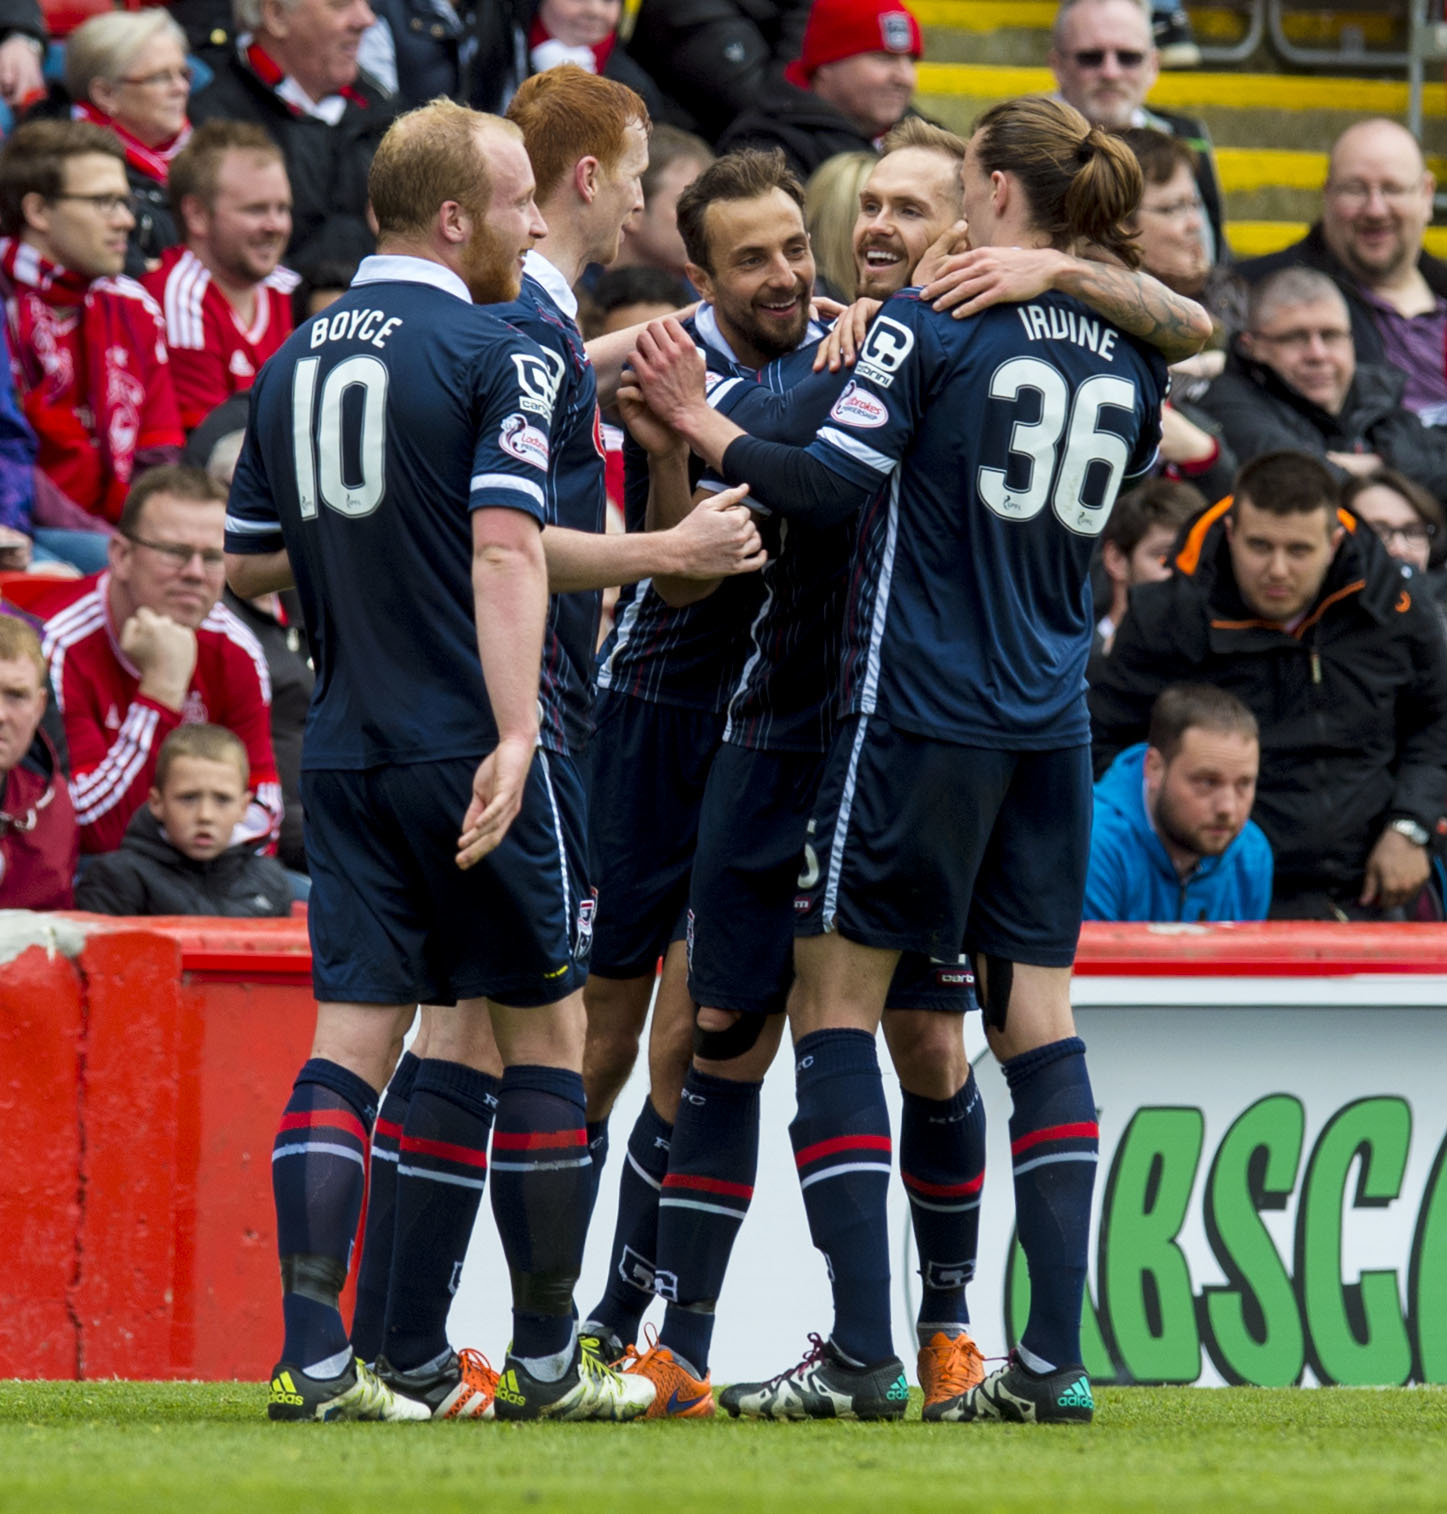 Ross County's Martin Woods (2nd right) celebrates with his team mates after making it 4 - 0